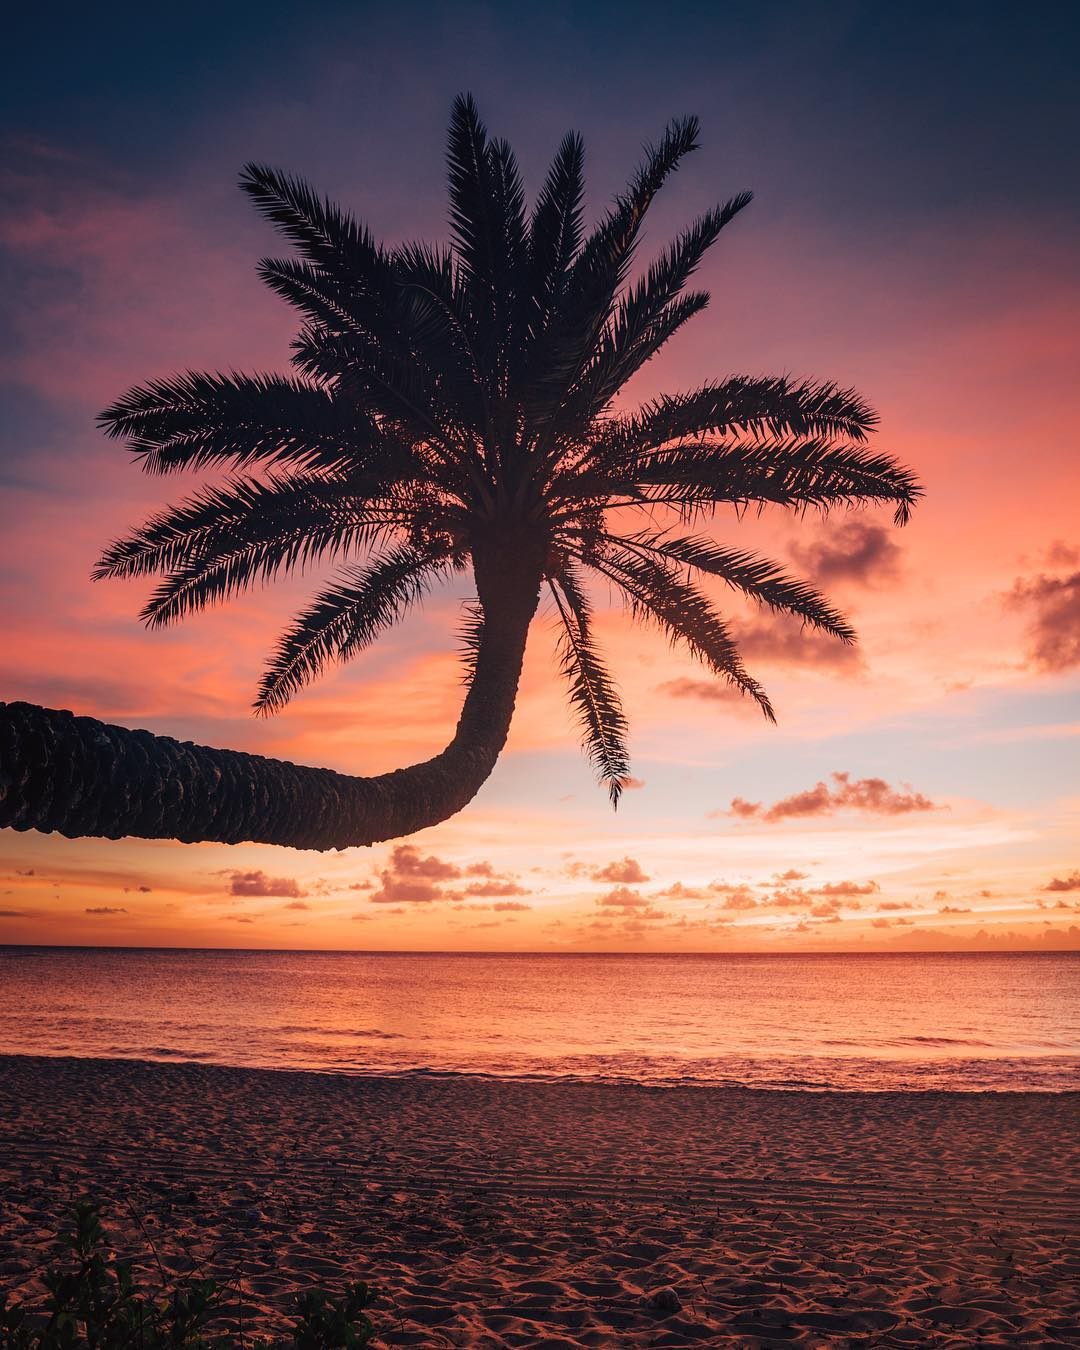 Watch the sunset at sunset beach - #39 of 50 Best Things to do on Oahu